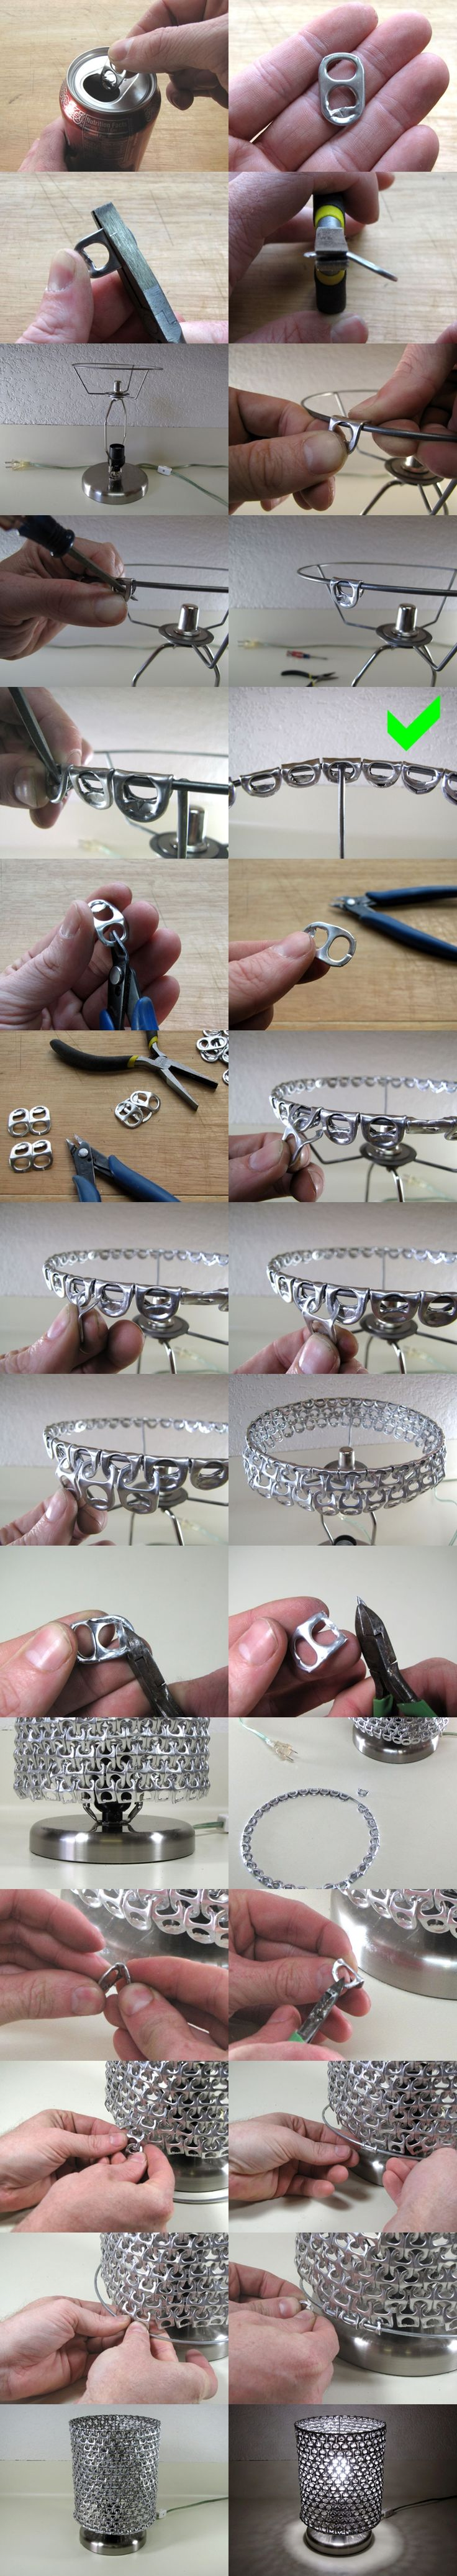 DIY Unique Lamp Shade From Ring Pulls--> http://wonderfuldiy.com/wonderful-diy-unique-lamp-shade-from-ring-pulls/